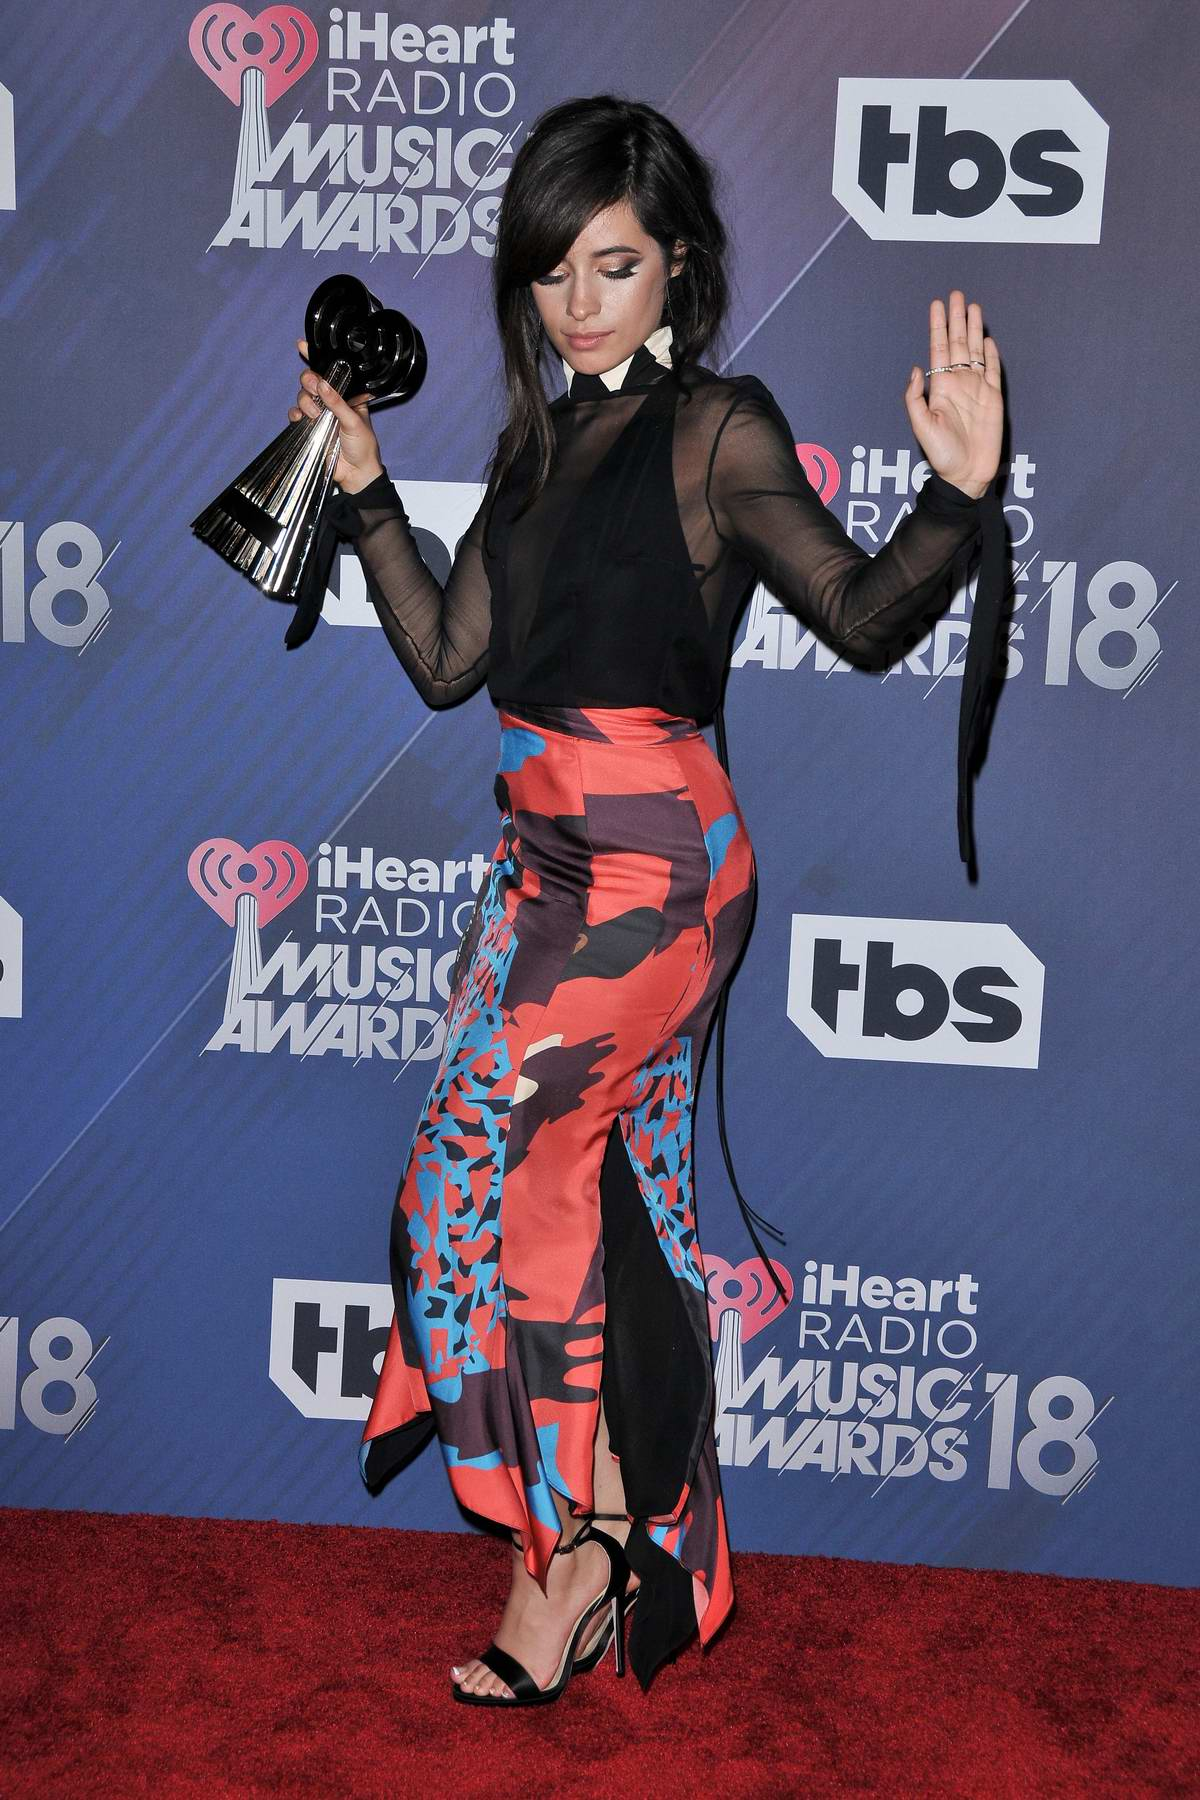 Camila Cabello attends the 2018 iHeartRadio Music Awards at The Forum in Inglewood, California